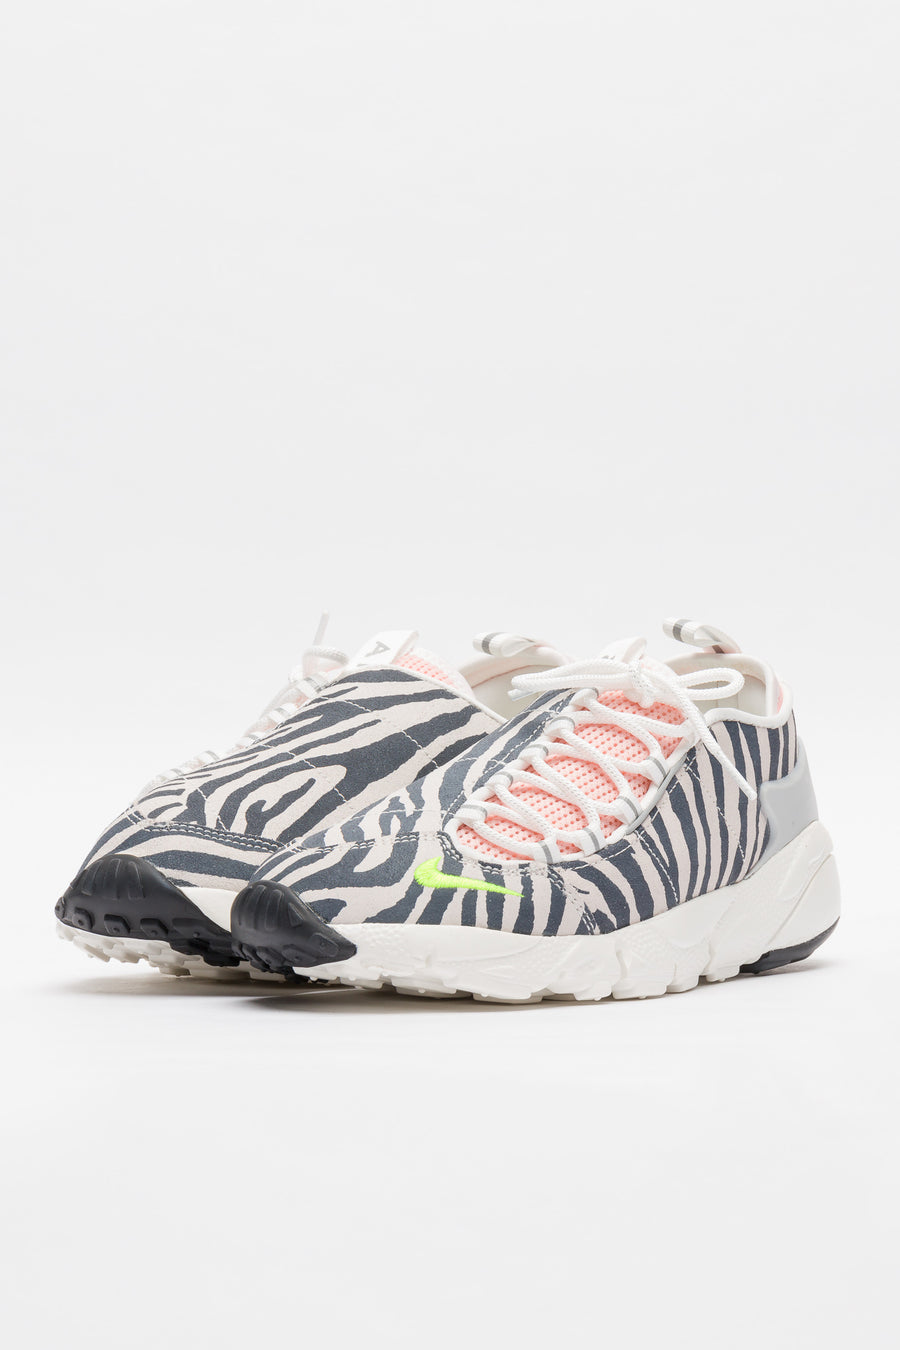 Nike Olivia Kim Air Footscape in White/Black/Bleached Coral - Notre